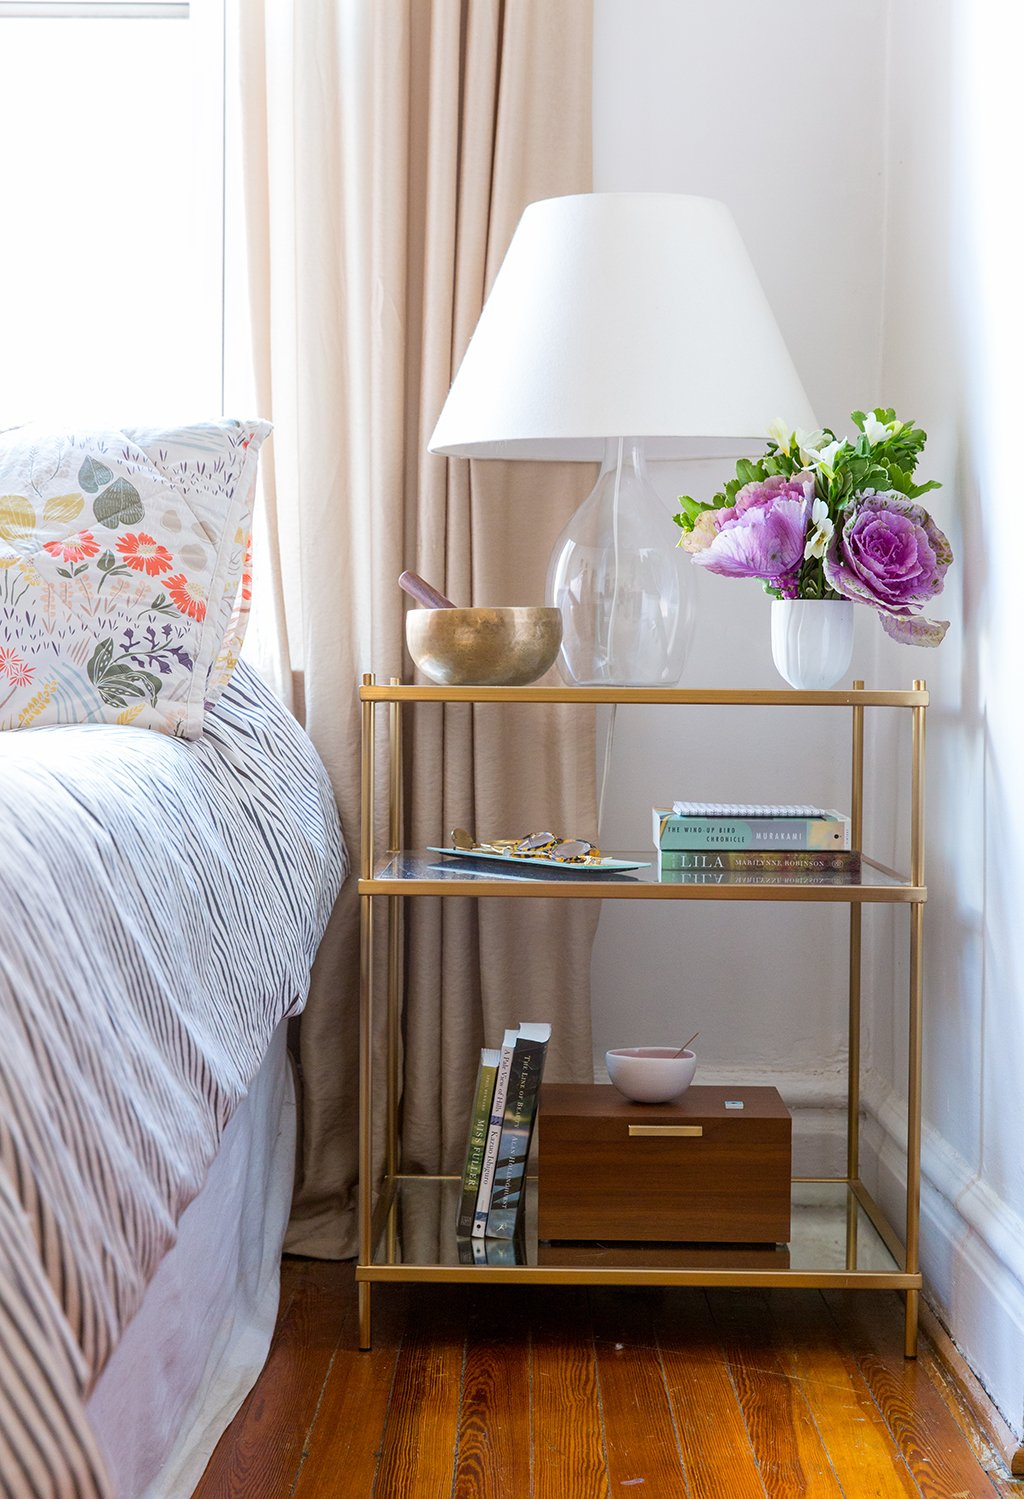 Fancy Dysfunctional furniture A nightstand with drawers would be a better choice for stashing personal items near the bedside But says Doland at least having